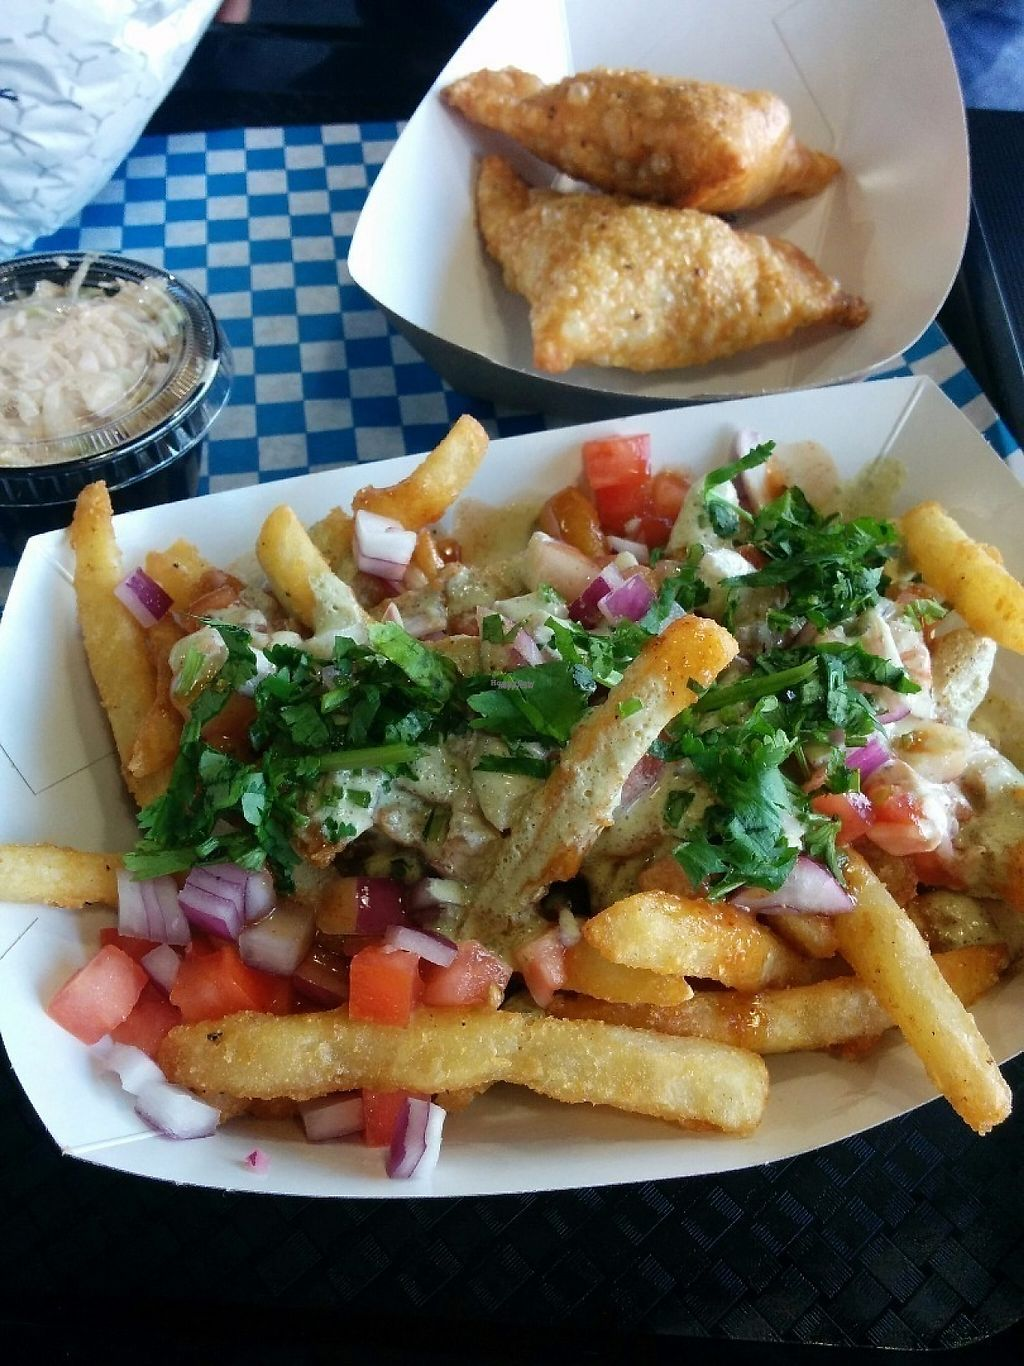 """Photo of Rick's Good Eats  by <a href=""""/members/profile/MichelleMolloy"""">MichelleMolloy</a> <br/>Fries Chaat, Veggie Samosas <br/> November 15, 2016  - <a href='/contact/abuse/image/82824/190689'>Report</a>"""